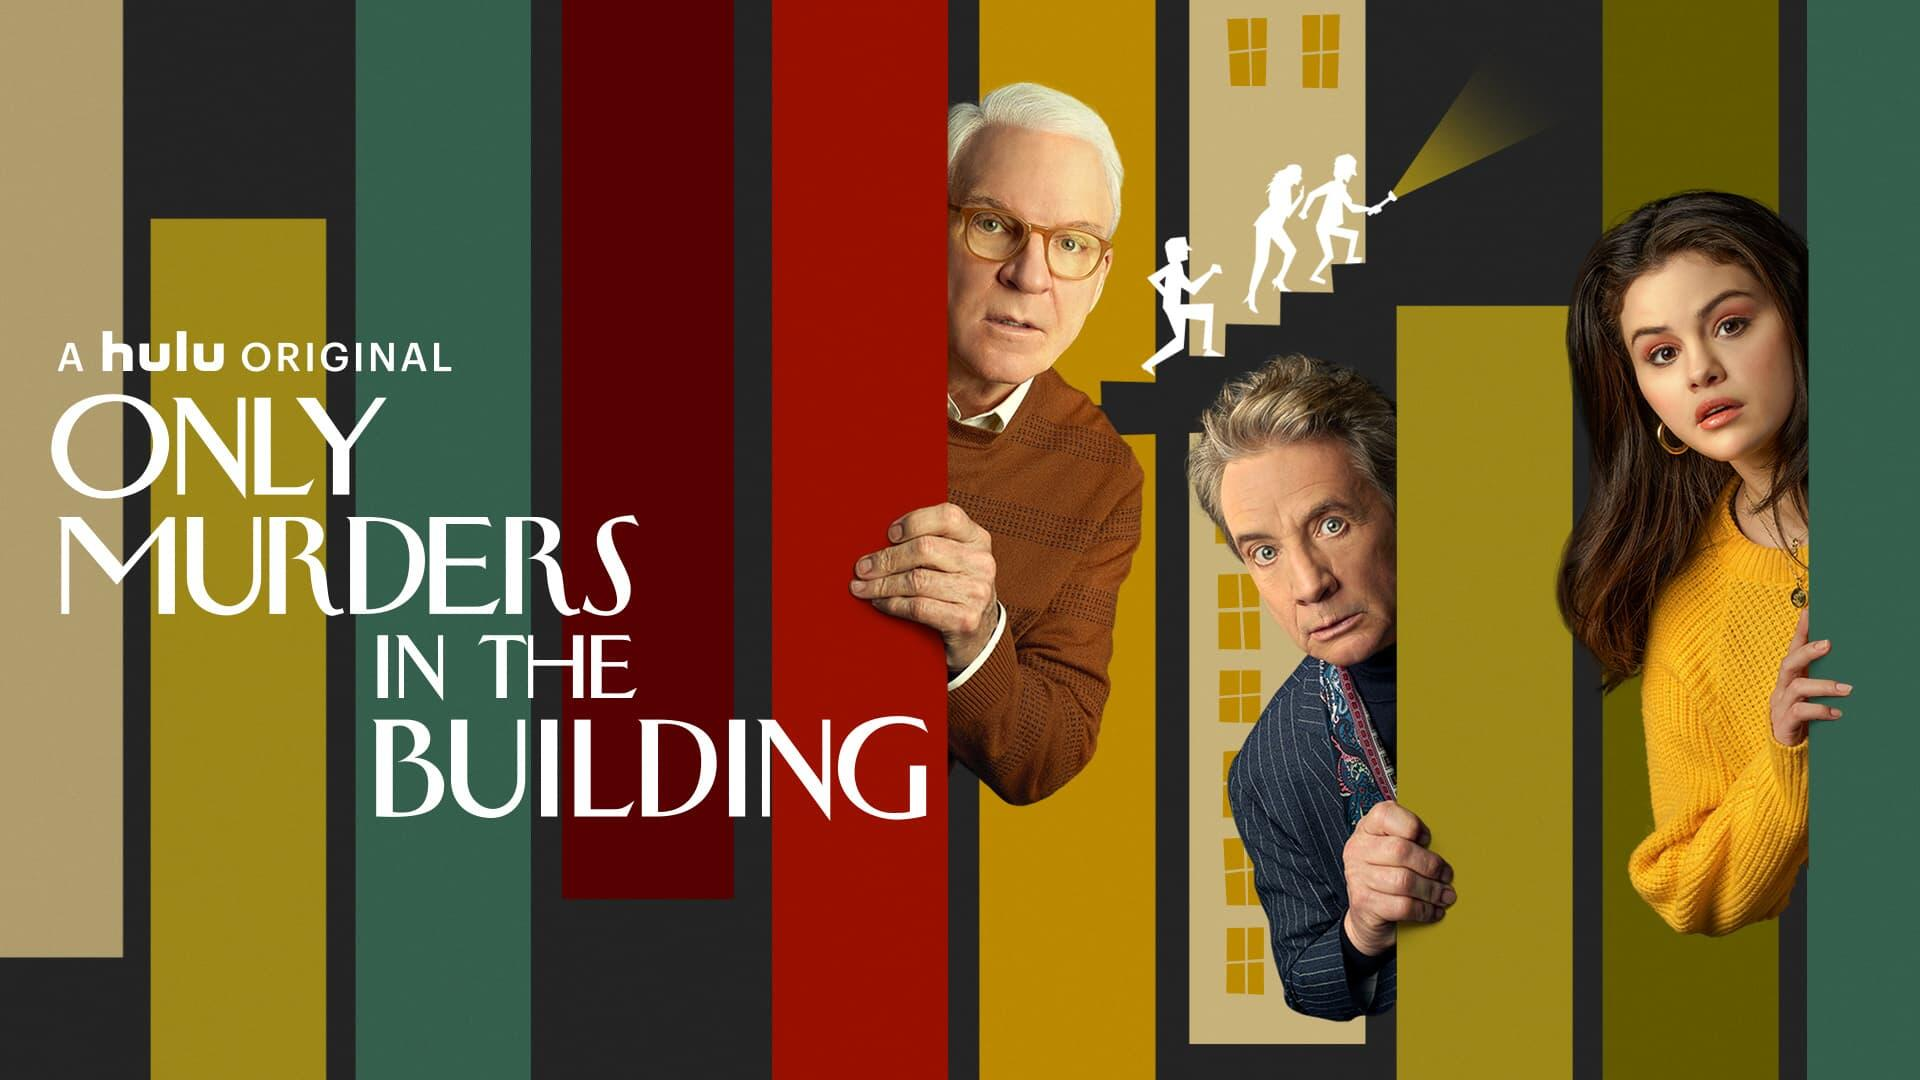 """Only Murders In The Building -- From the minds of Steve Martin, Dan Fogelman and John Hoffman comes a comedic murder-mystery series for the ages. """"Only Murders In The Building"""" follows three strangers (Steve Martin, Martin Short and Selena Gomez) who share an obsession with true crime and suddenly find themselves wrapped up in one. When a grisly death occurs inside their exclusive Upper West Side apartment building, the trio suspects murder and employs their precise knowledge of true crime to investigate the truth. As they record a podcast of their own to document the case, the three unravel the complex secrets of the building which stretch back years. Perhaps even more explosive are the lies they tell one another. Soon, the endangered trio comes to realize a killer might be living amongst them as they race to decipher the mounting clues before it's too late. Charles (Steve Martin), Oliver (Martin Short) and Mabel (Selena Gomez), shown. (Courtesy of Hulu)"""